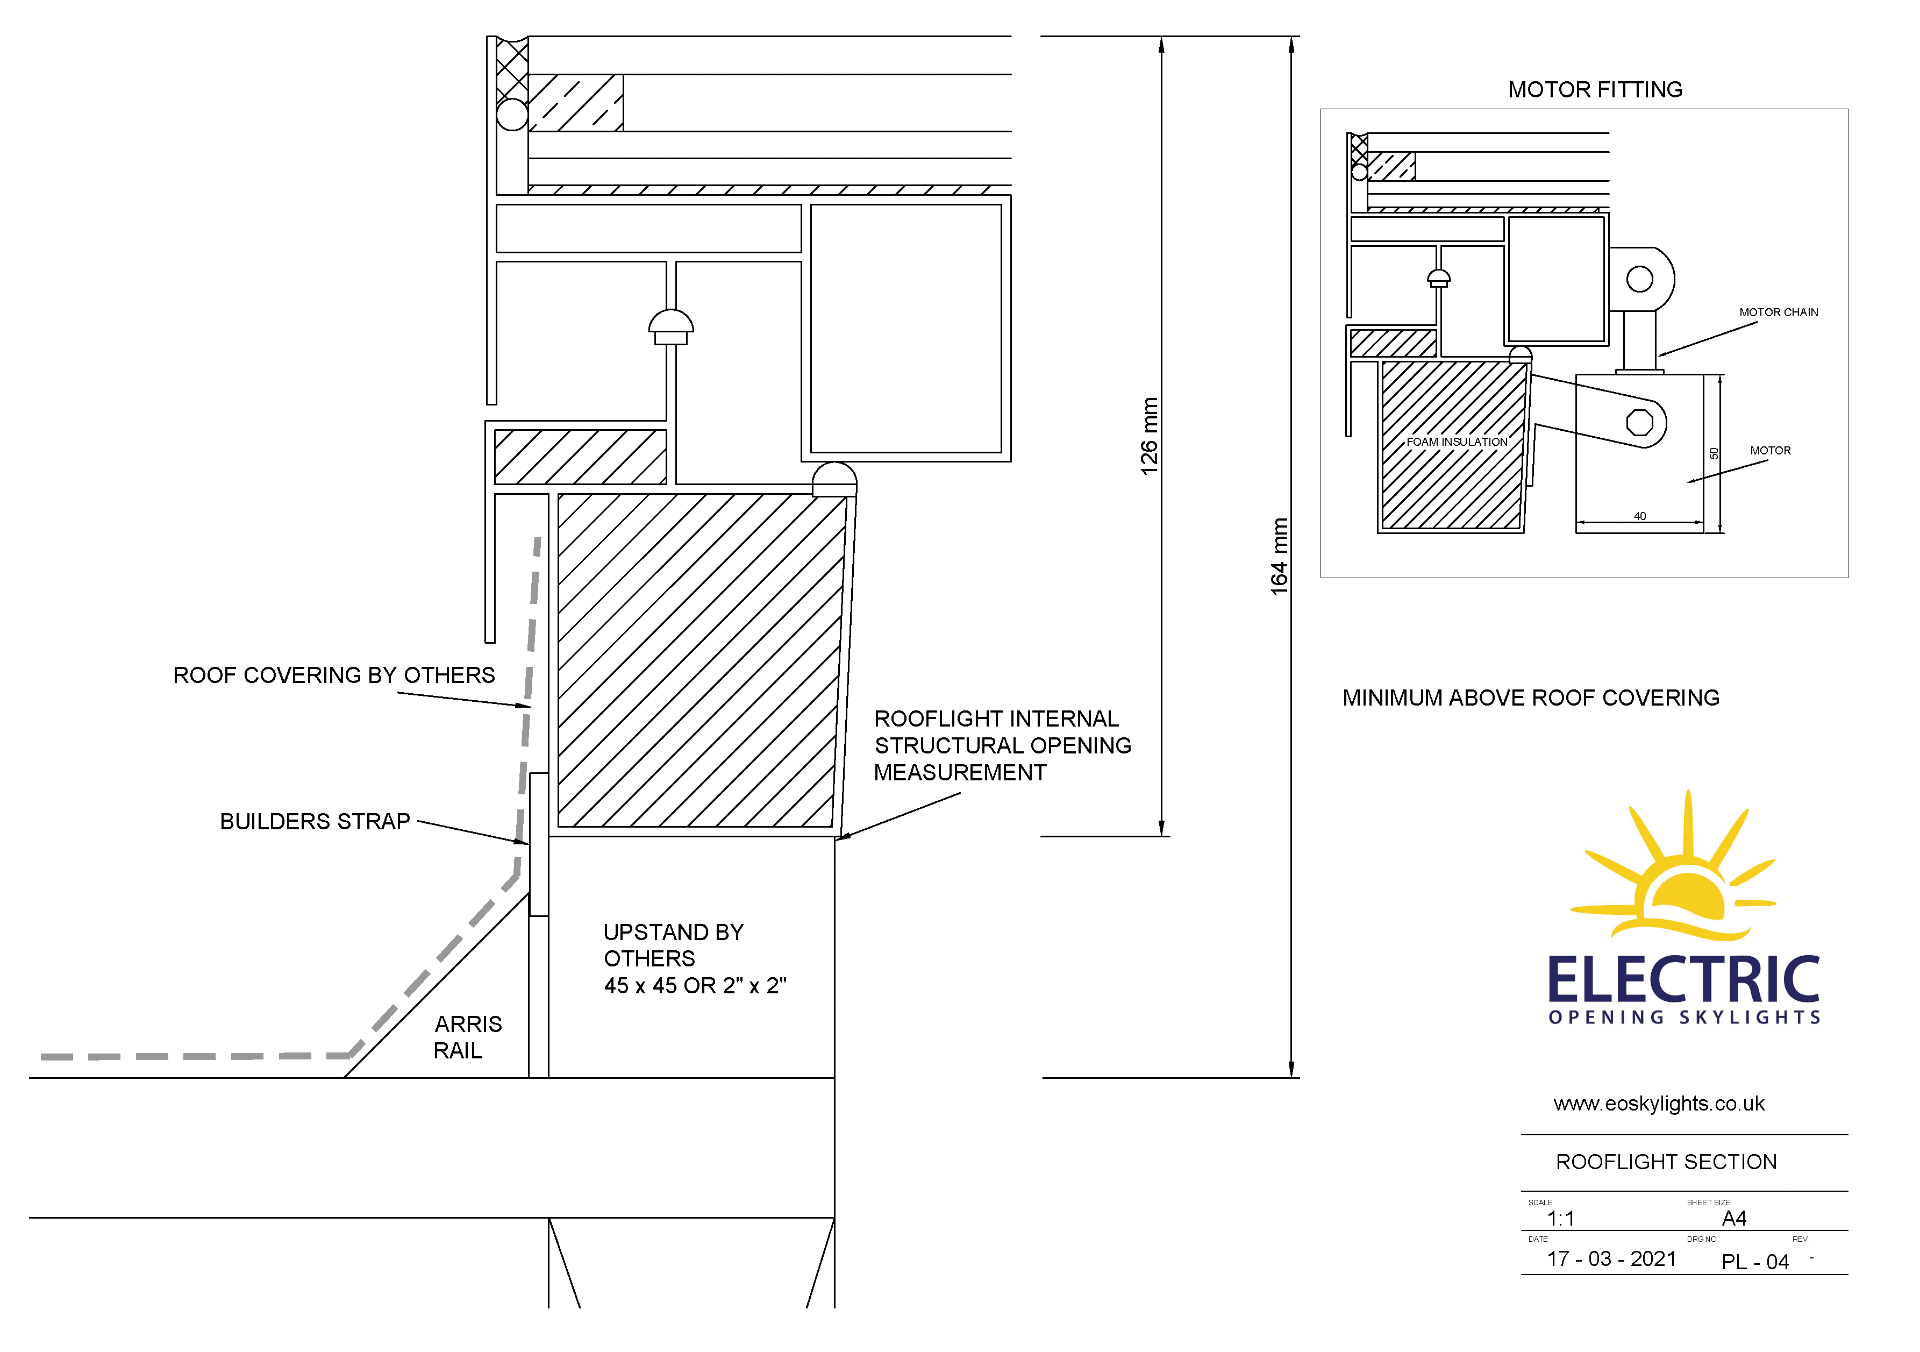 Panoroof (EOS) Electric Opening Skylight 800x1800mm - Aluminiun Frame Double Glazed Laminated Self- - Image 3 of 6